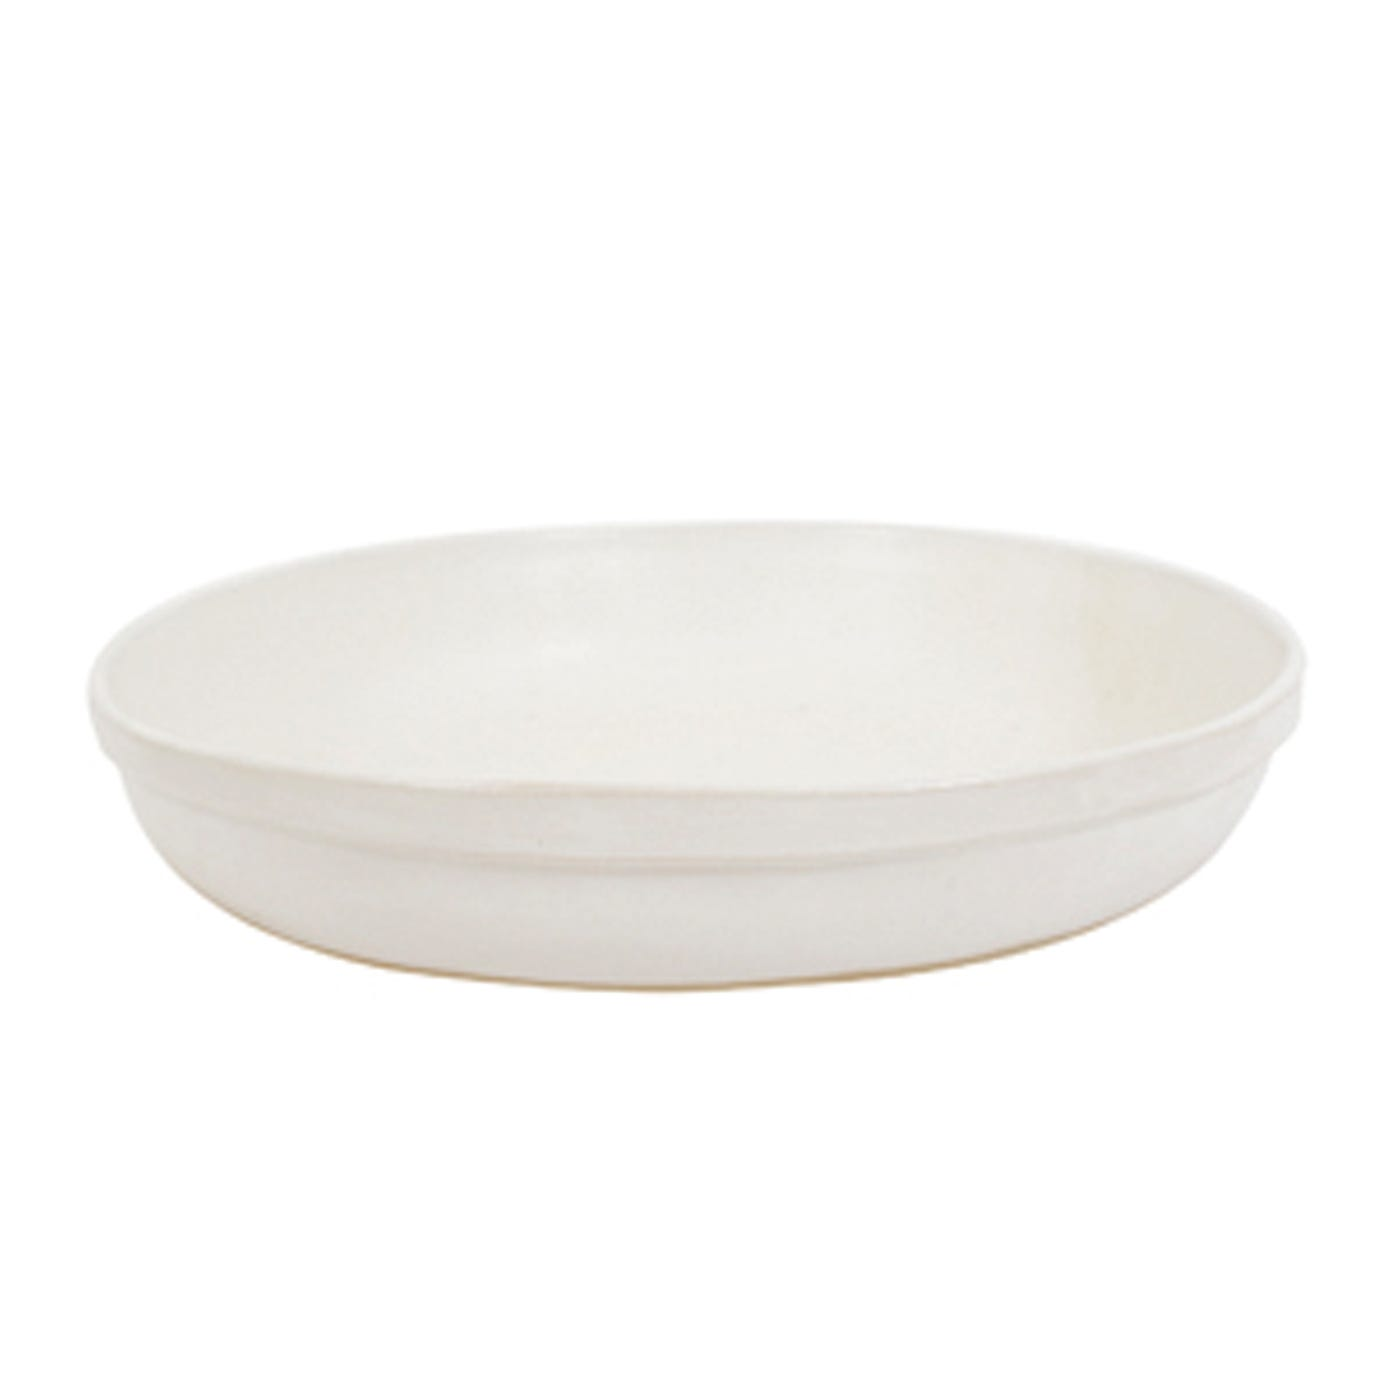 Mervyn Gers Extra Large Bowl With Lip White